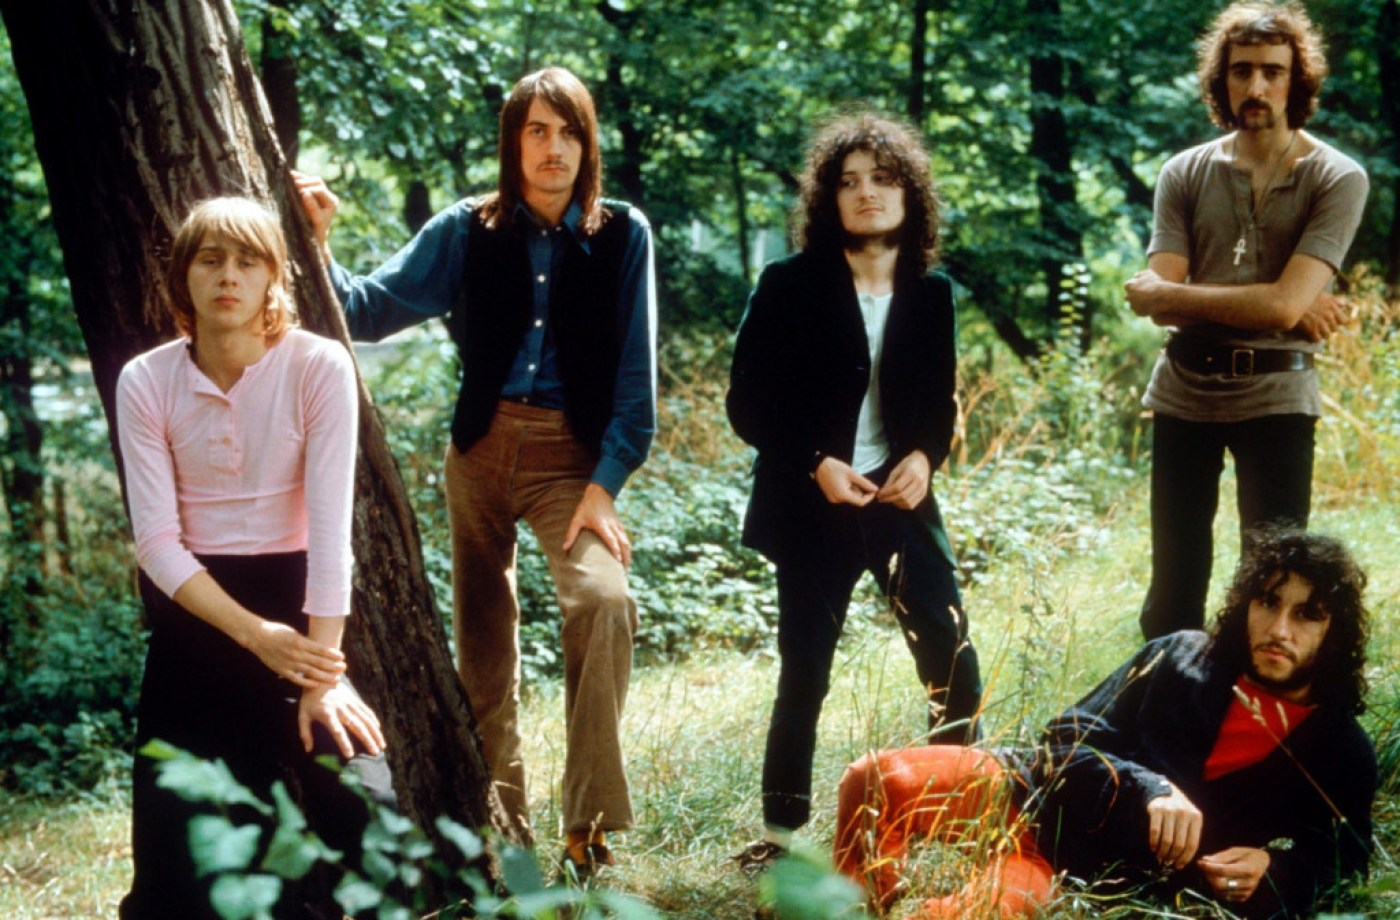 Danny Kirwan, Mick Fleetwood, Jeremy Spencer, John McVie and Peter Green of Fleetwood mac